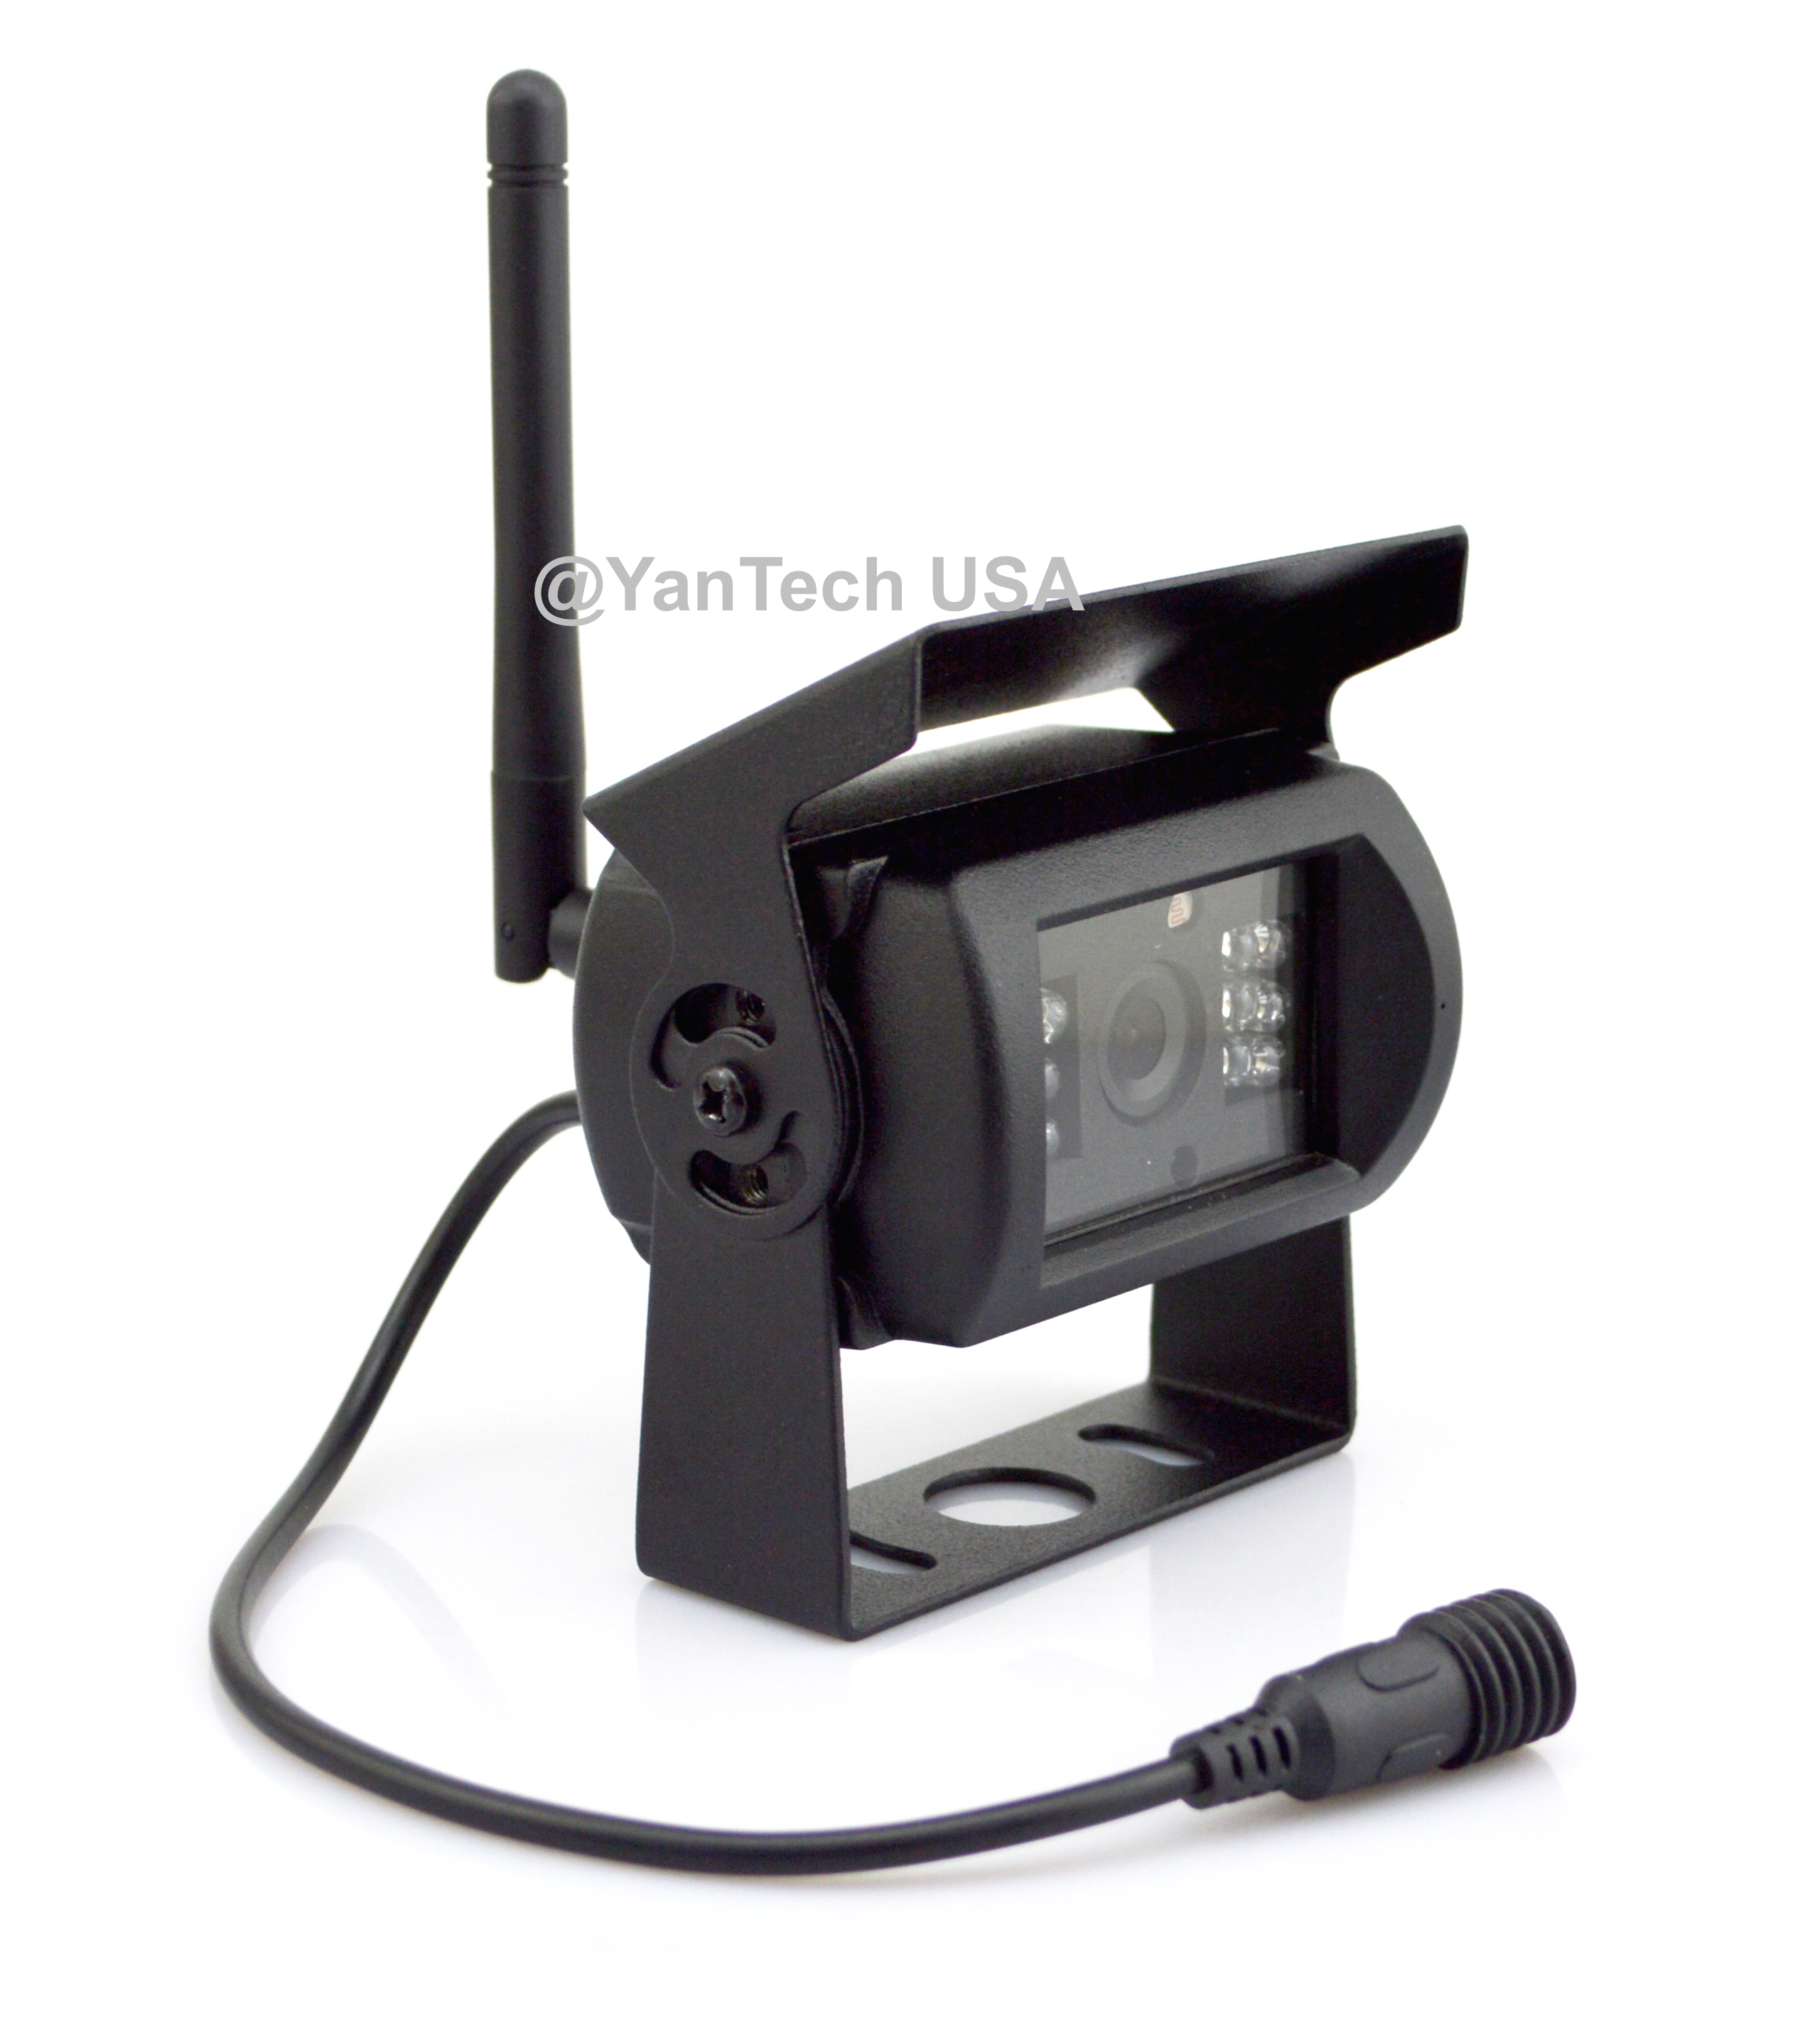 http://yantechusa.com/images/source/eBay2013/Wireless_Cam2.jpg